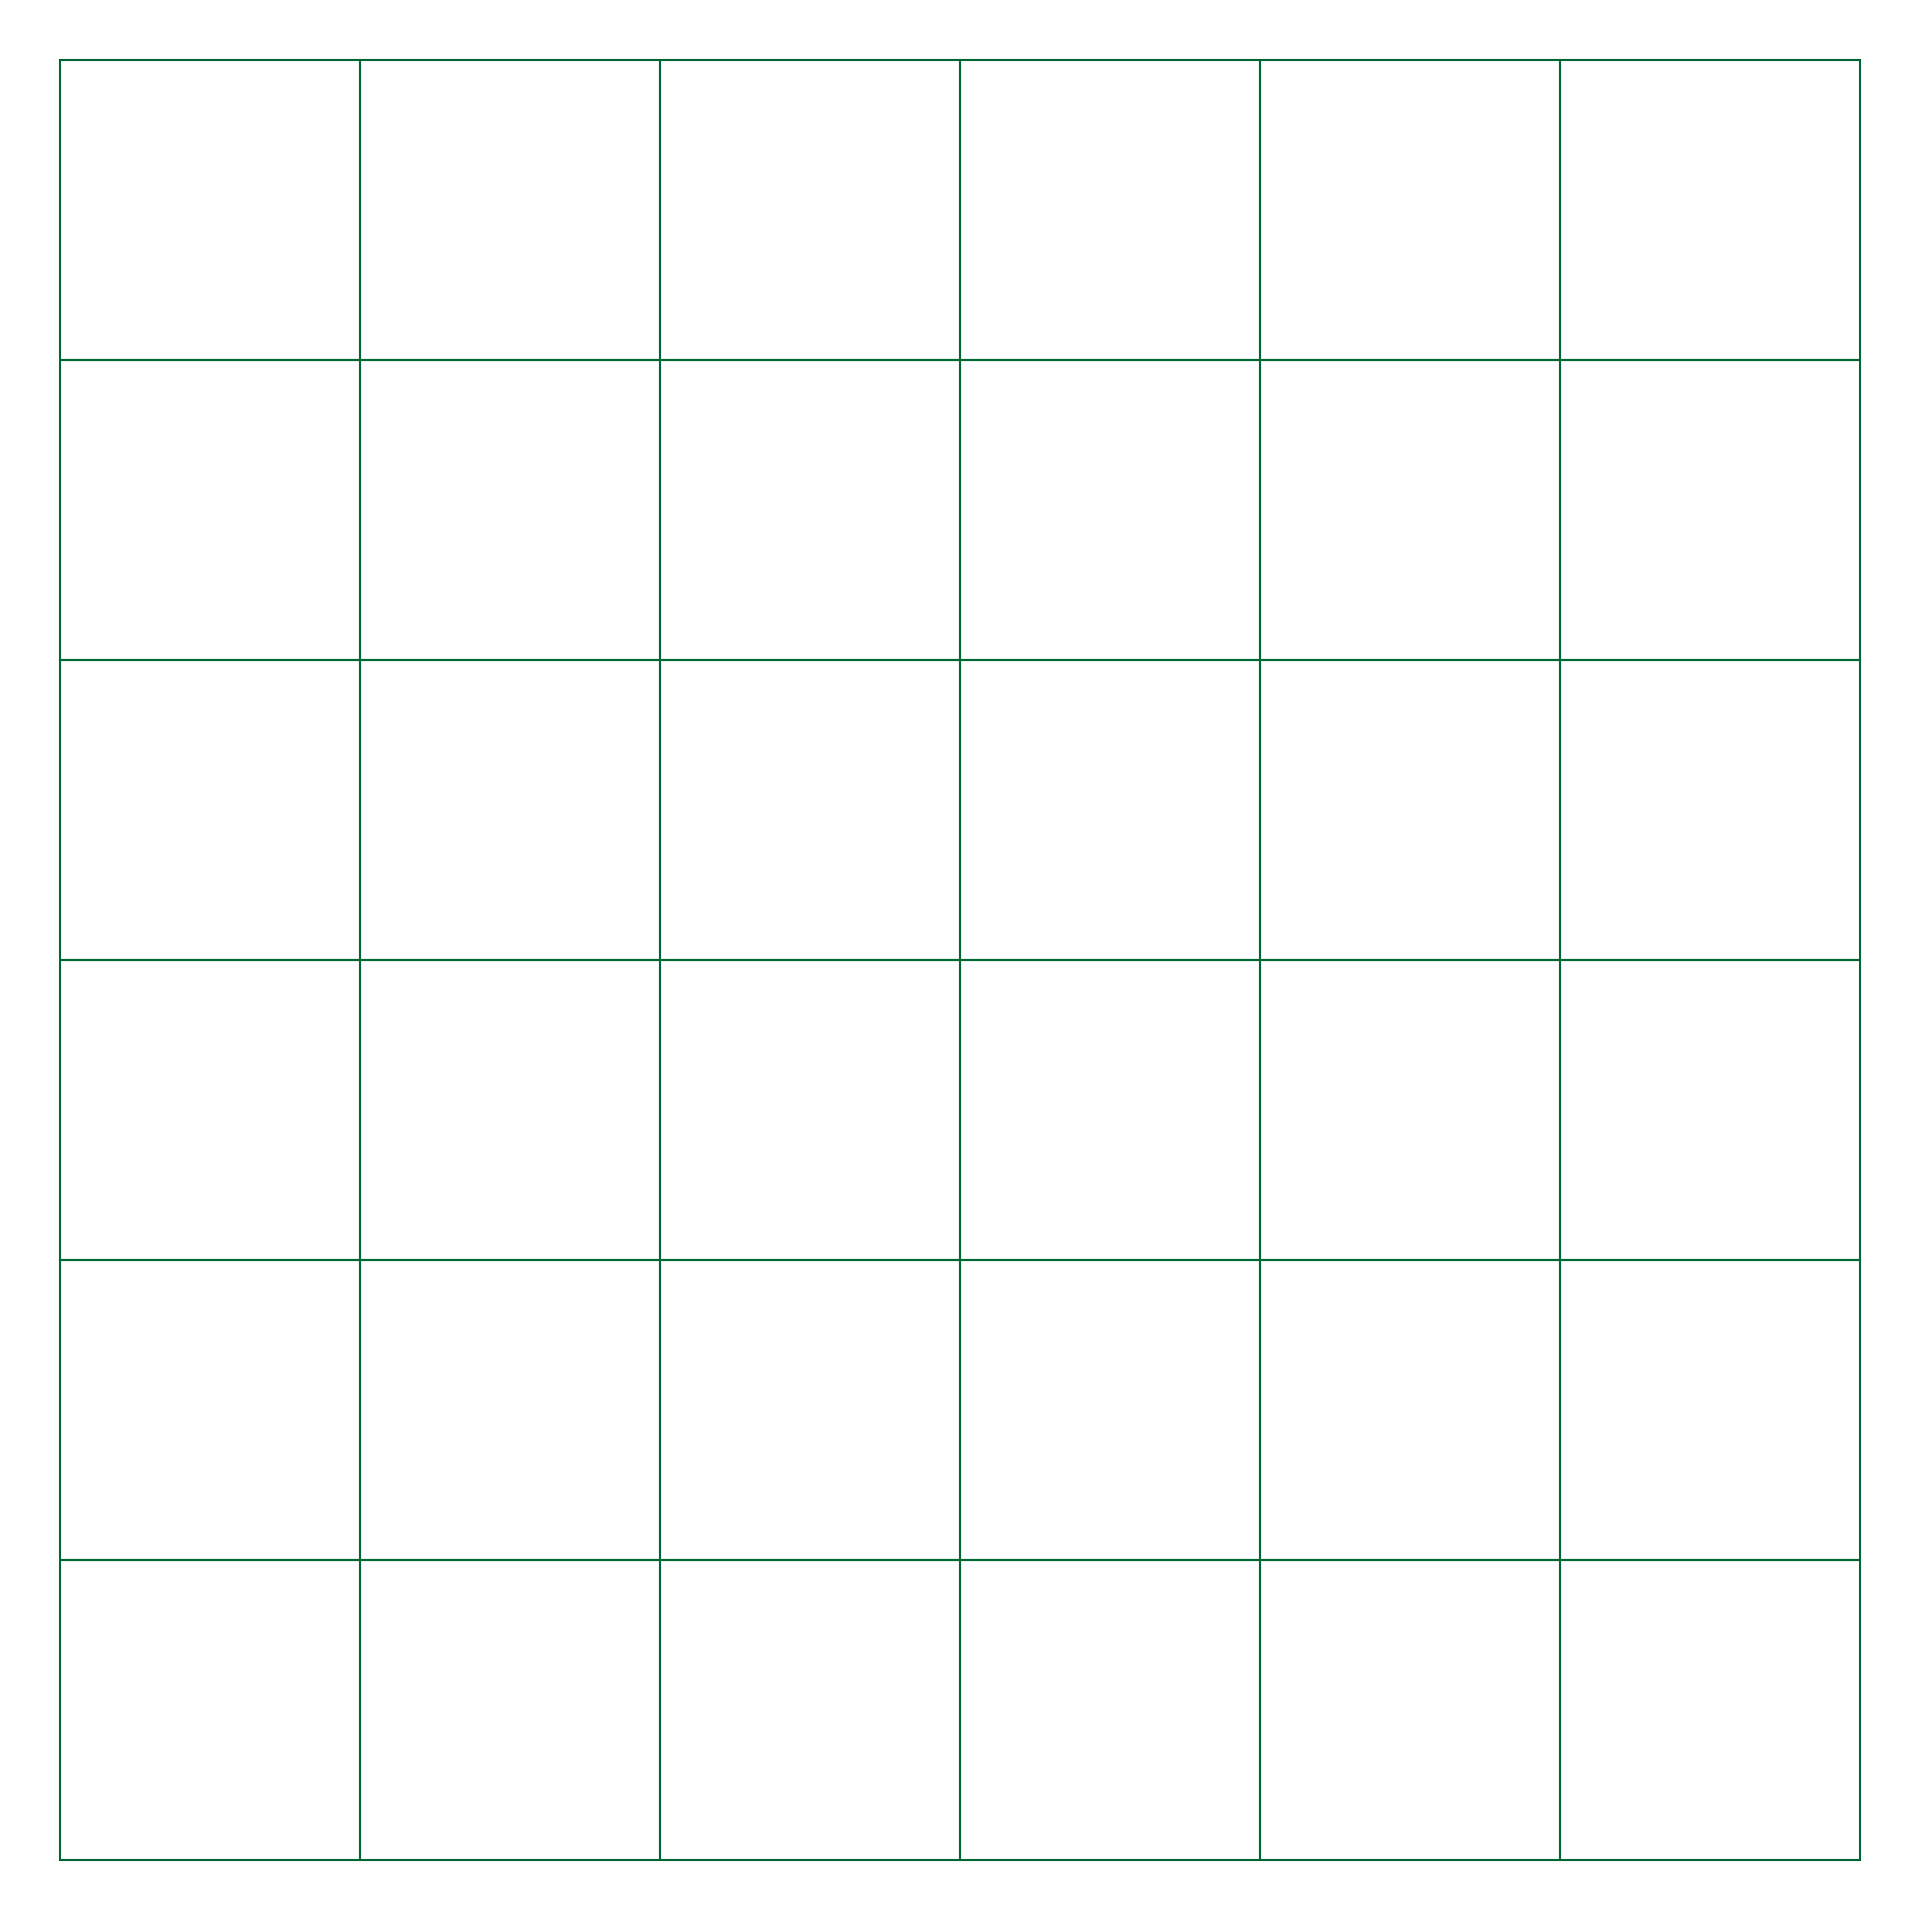 one inch grid paper Making grid / graph paper in microsoft word standard sizes of graph paper are frequently available but there are times when a specific size of graph paper or a specific grid size is needed for if you are working with 8 1/2 x 11 paper you are limited to printing on all but the outer 1/4.